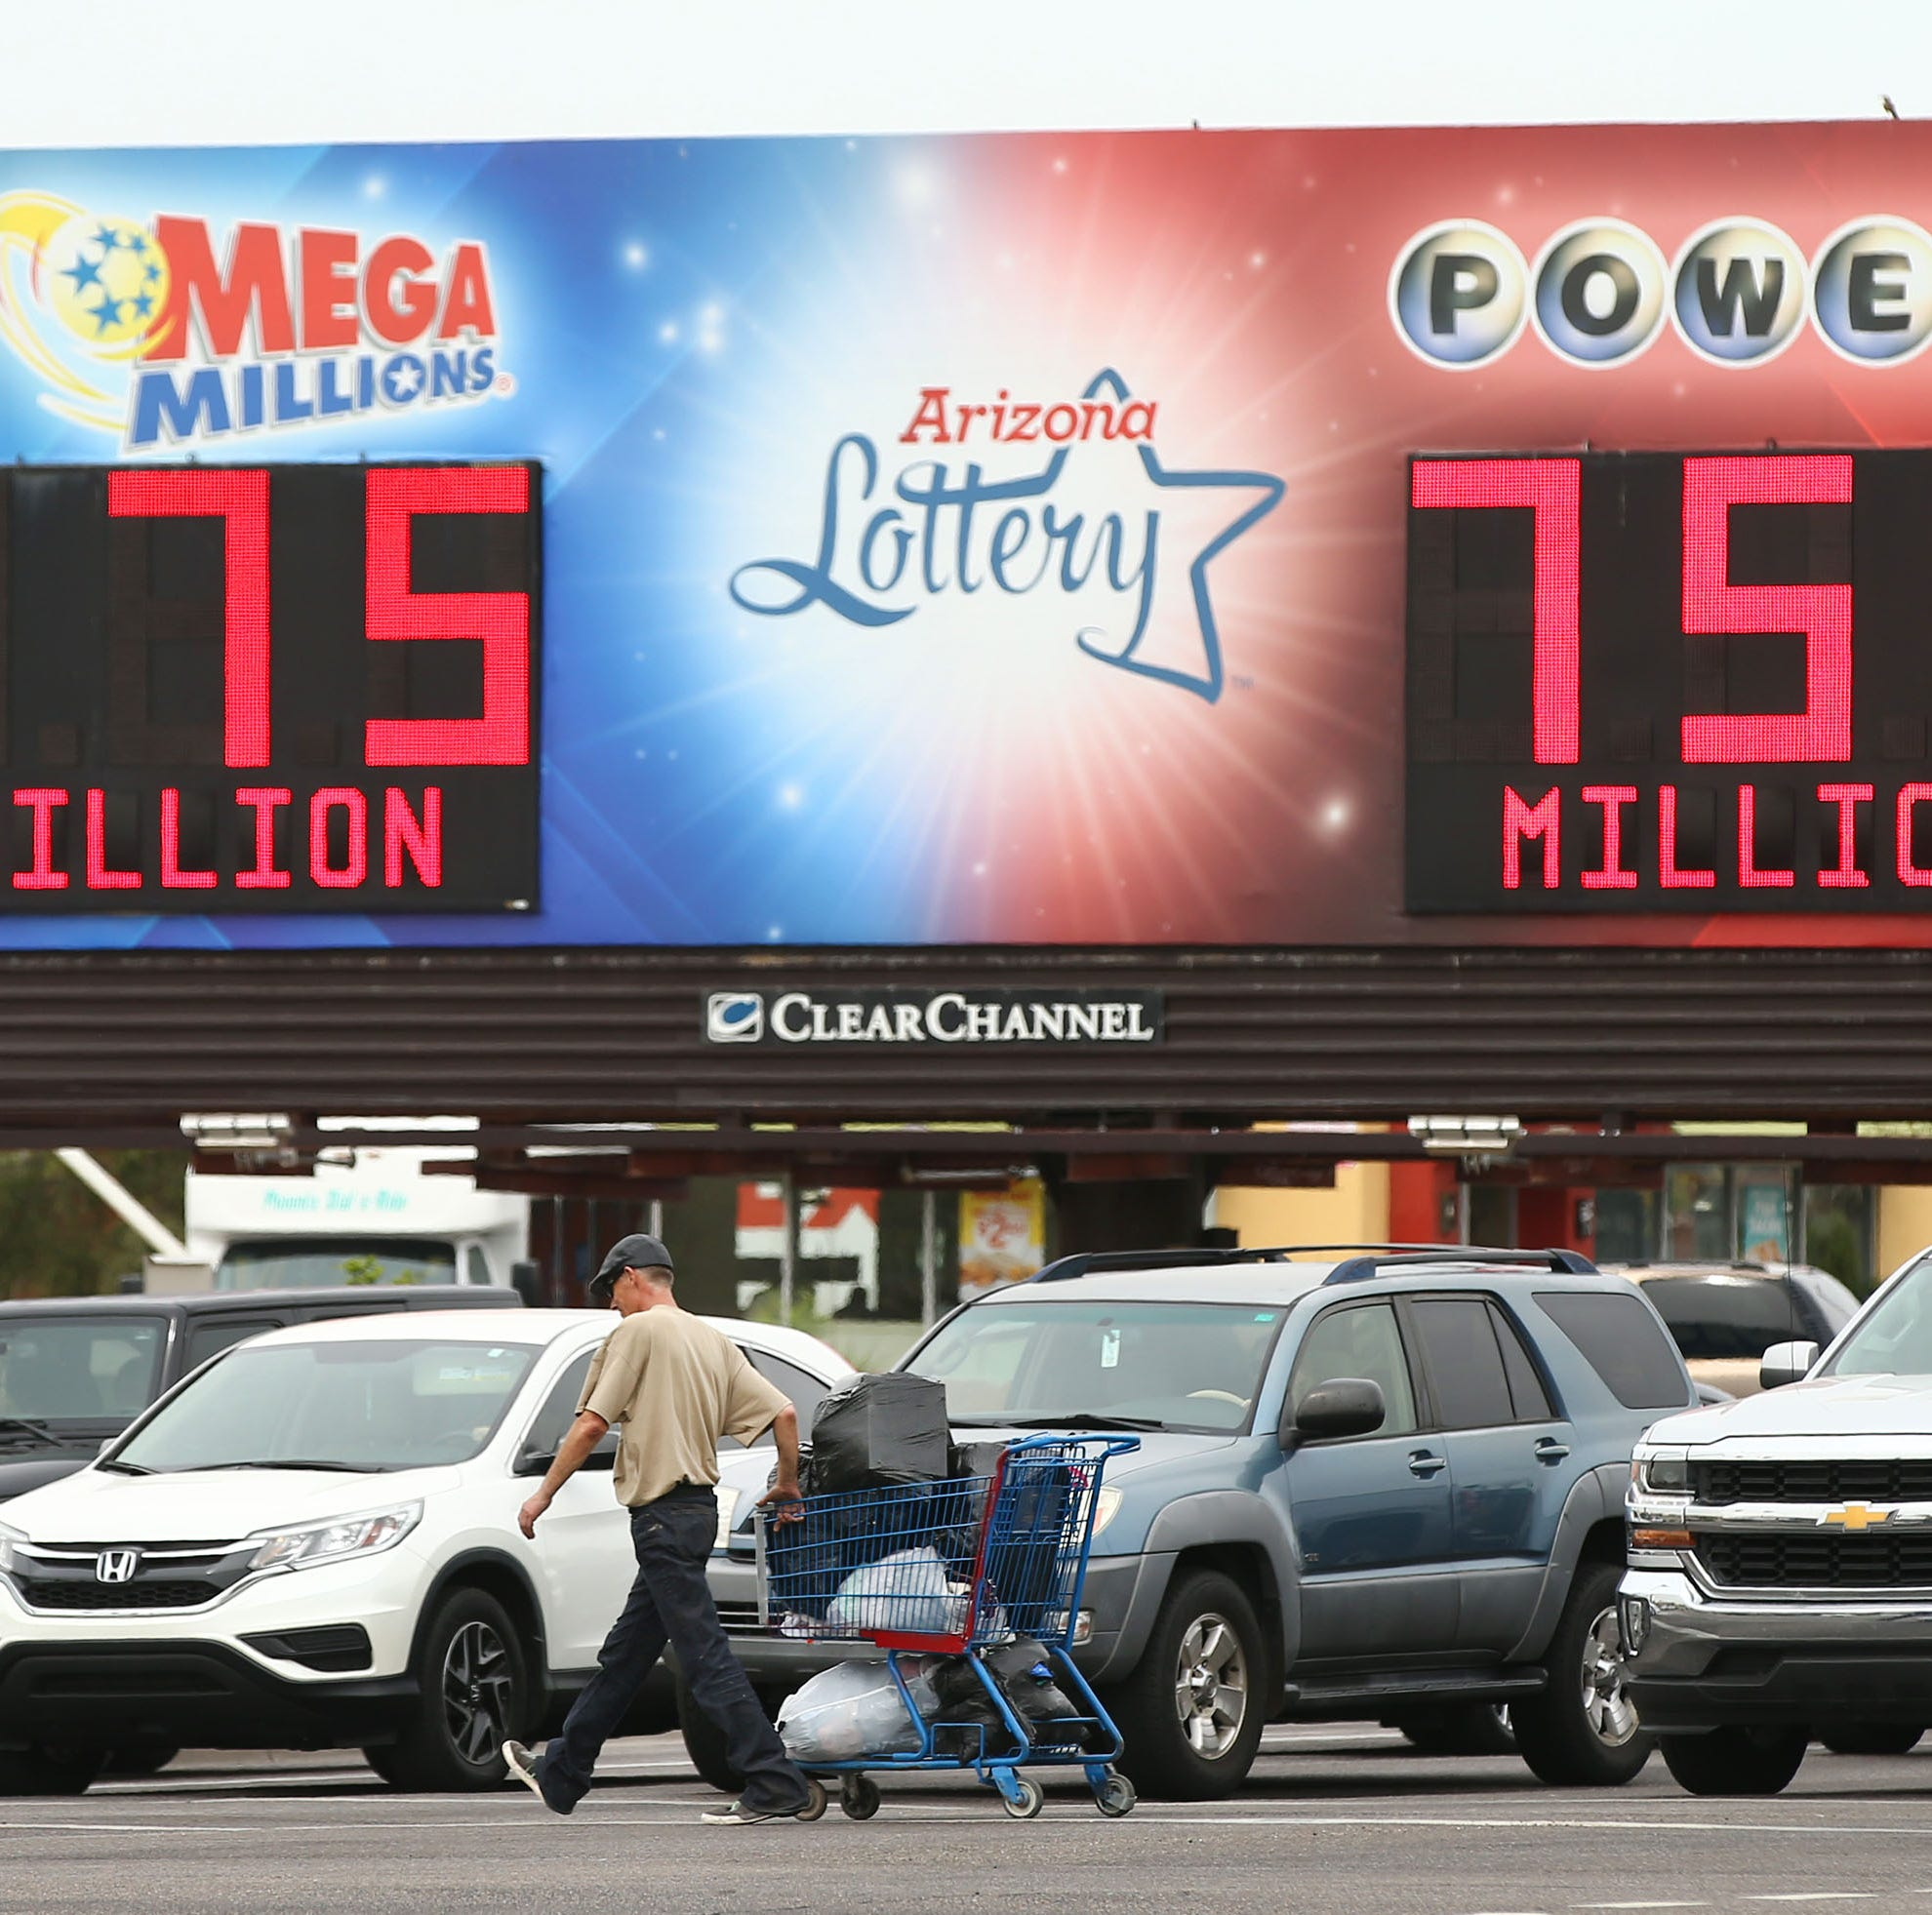 $1 million Powerball ticket sold in Mesa, 3 others in Arizona win $50,000